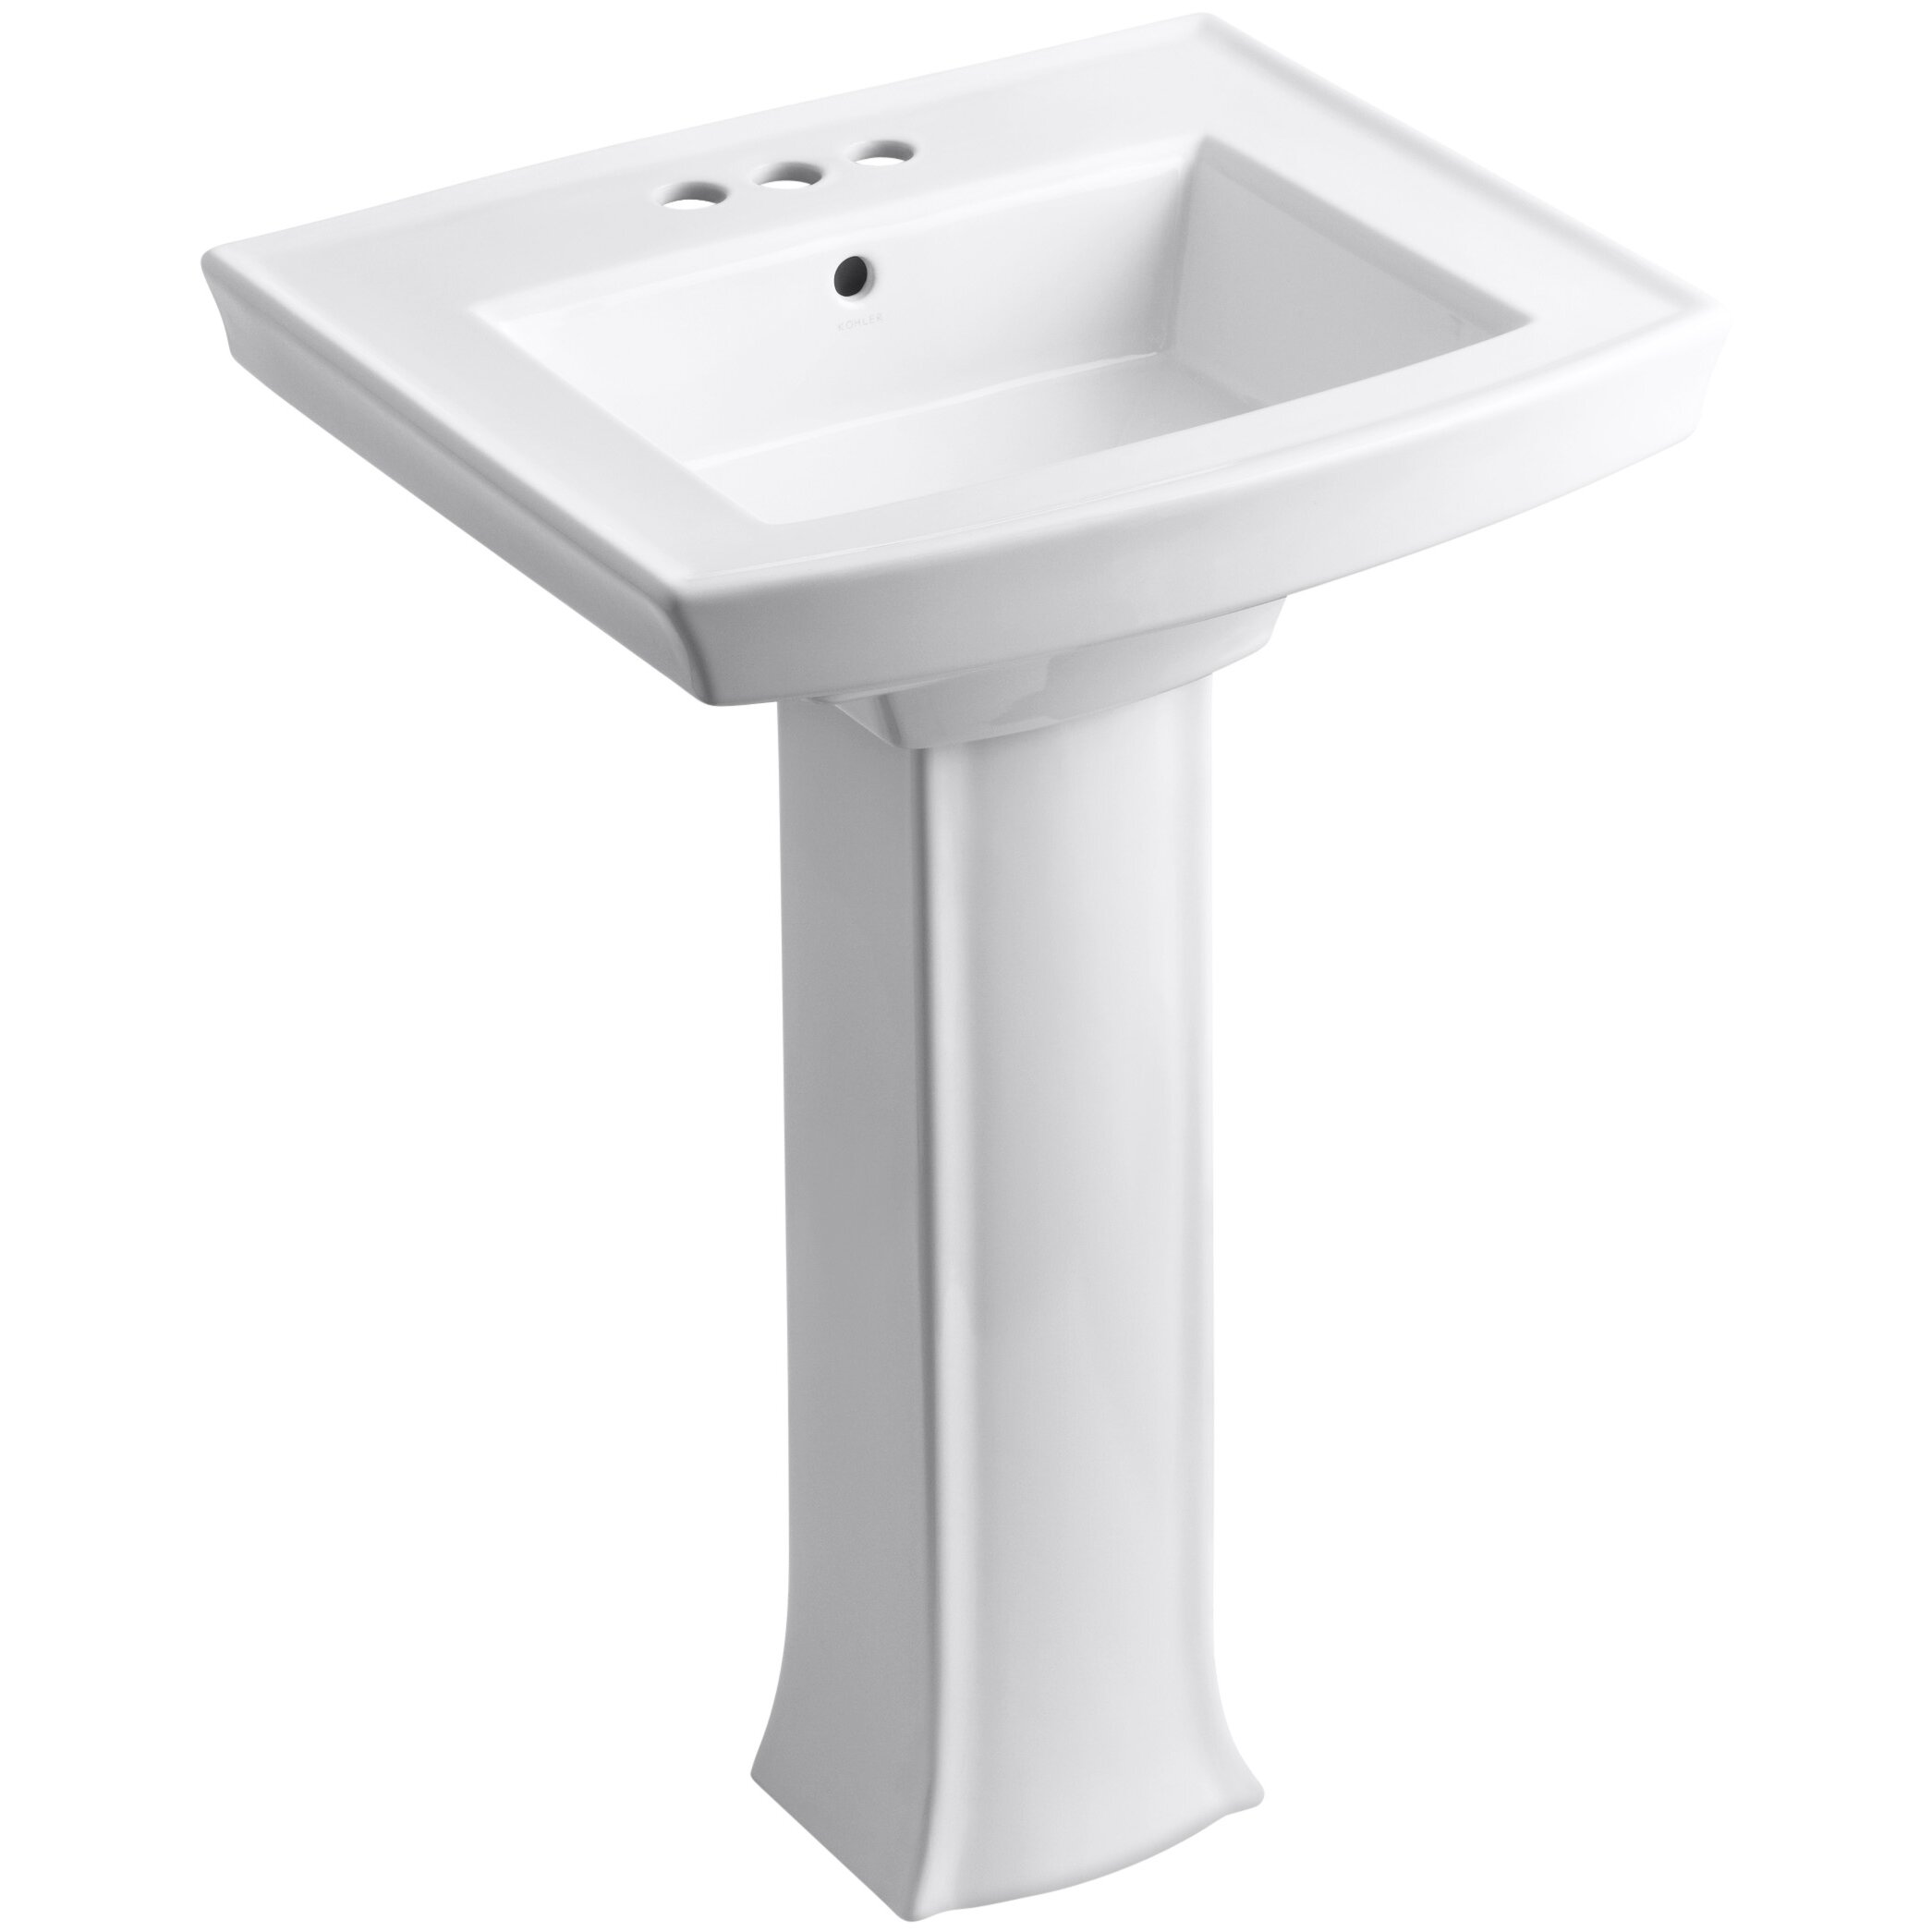 Kohler Archer Pedestal Sink  Kohler Archer Pedestal Sink Reviews Wayfair. Kohler Devonshire Pedestal Sink